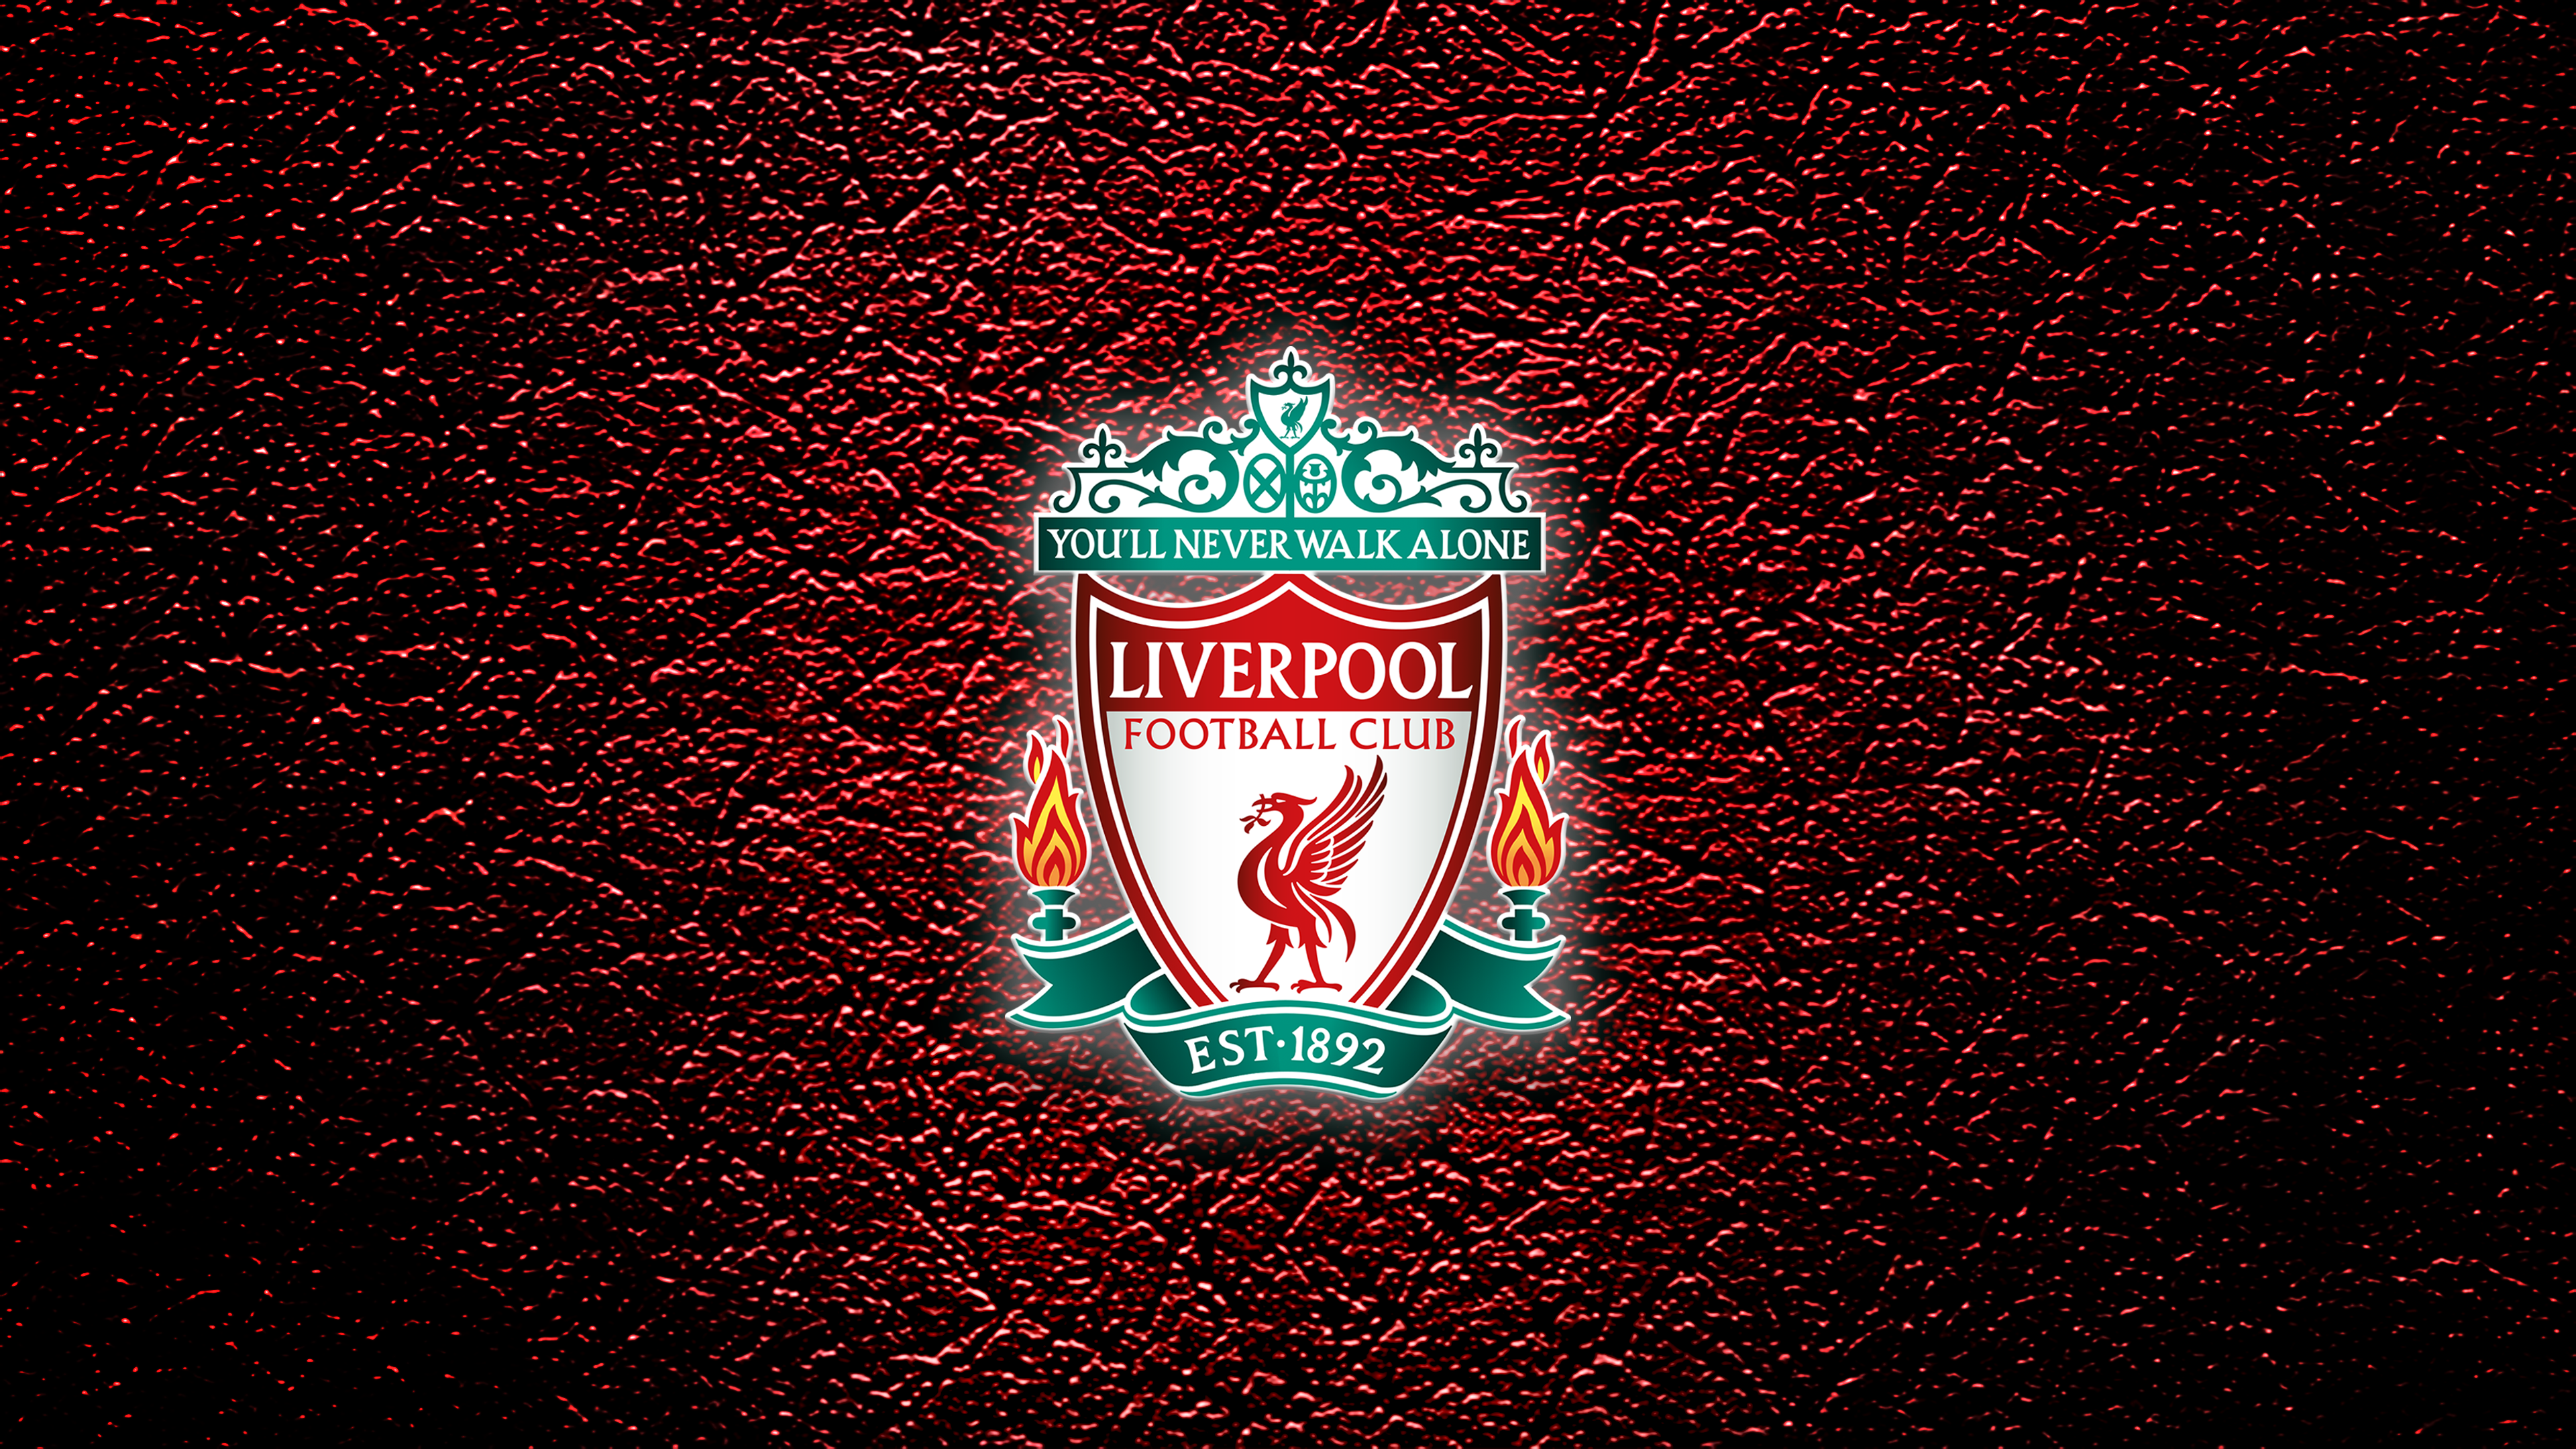 Lfc Wallpapers Top Free Lfc Backgrounds Wallpaperaccess